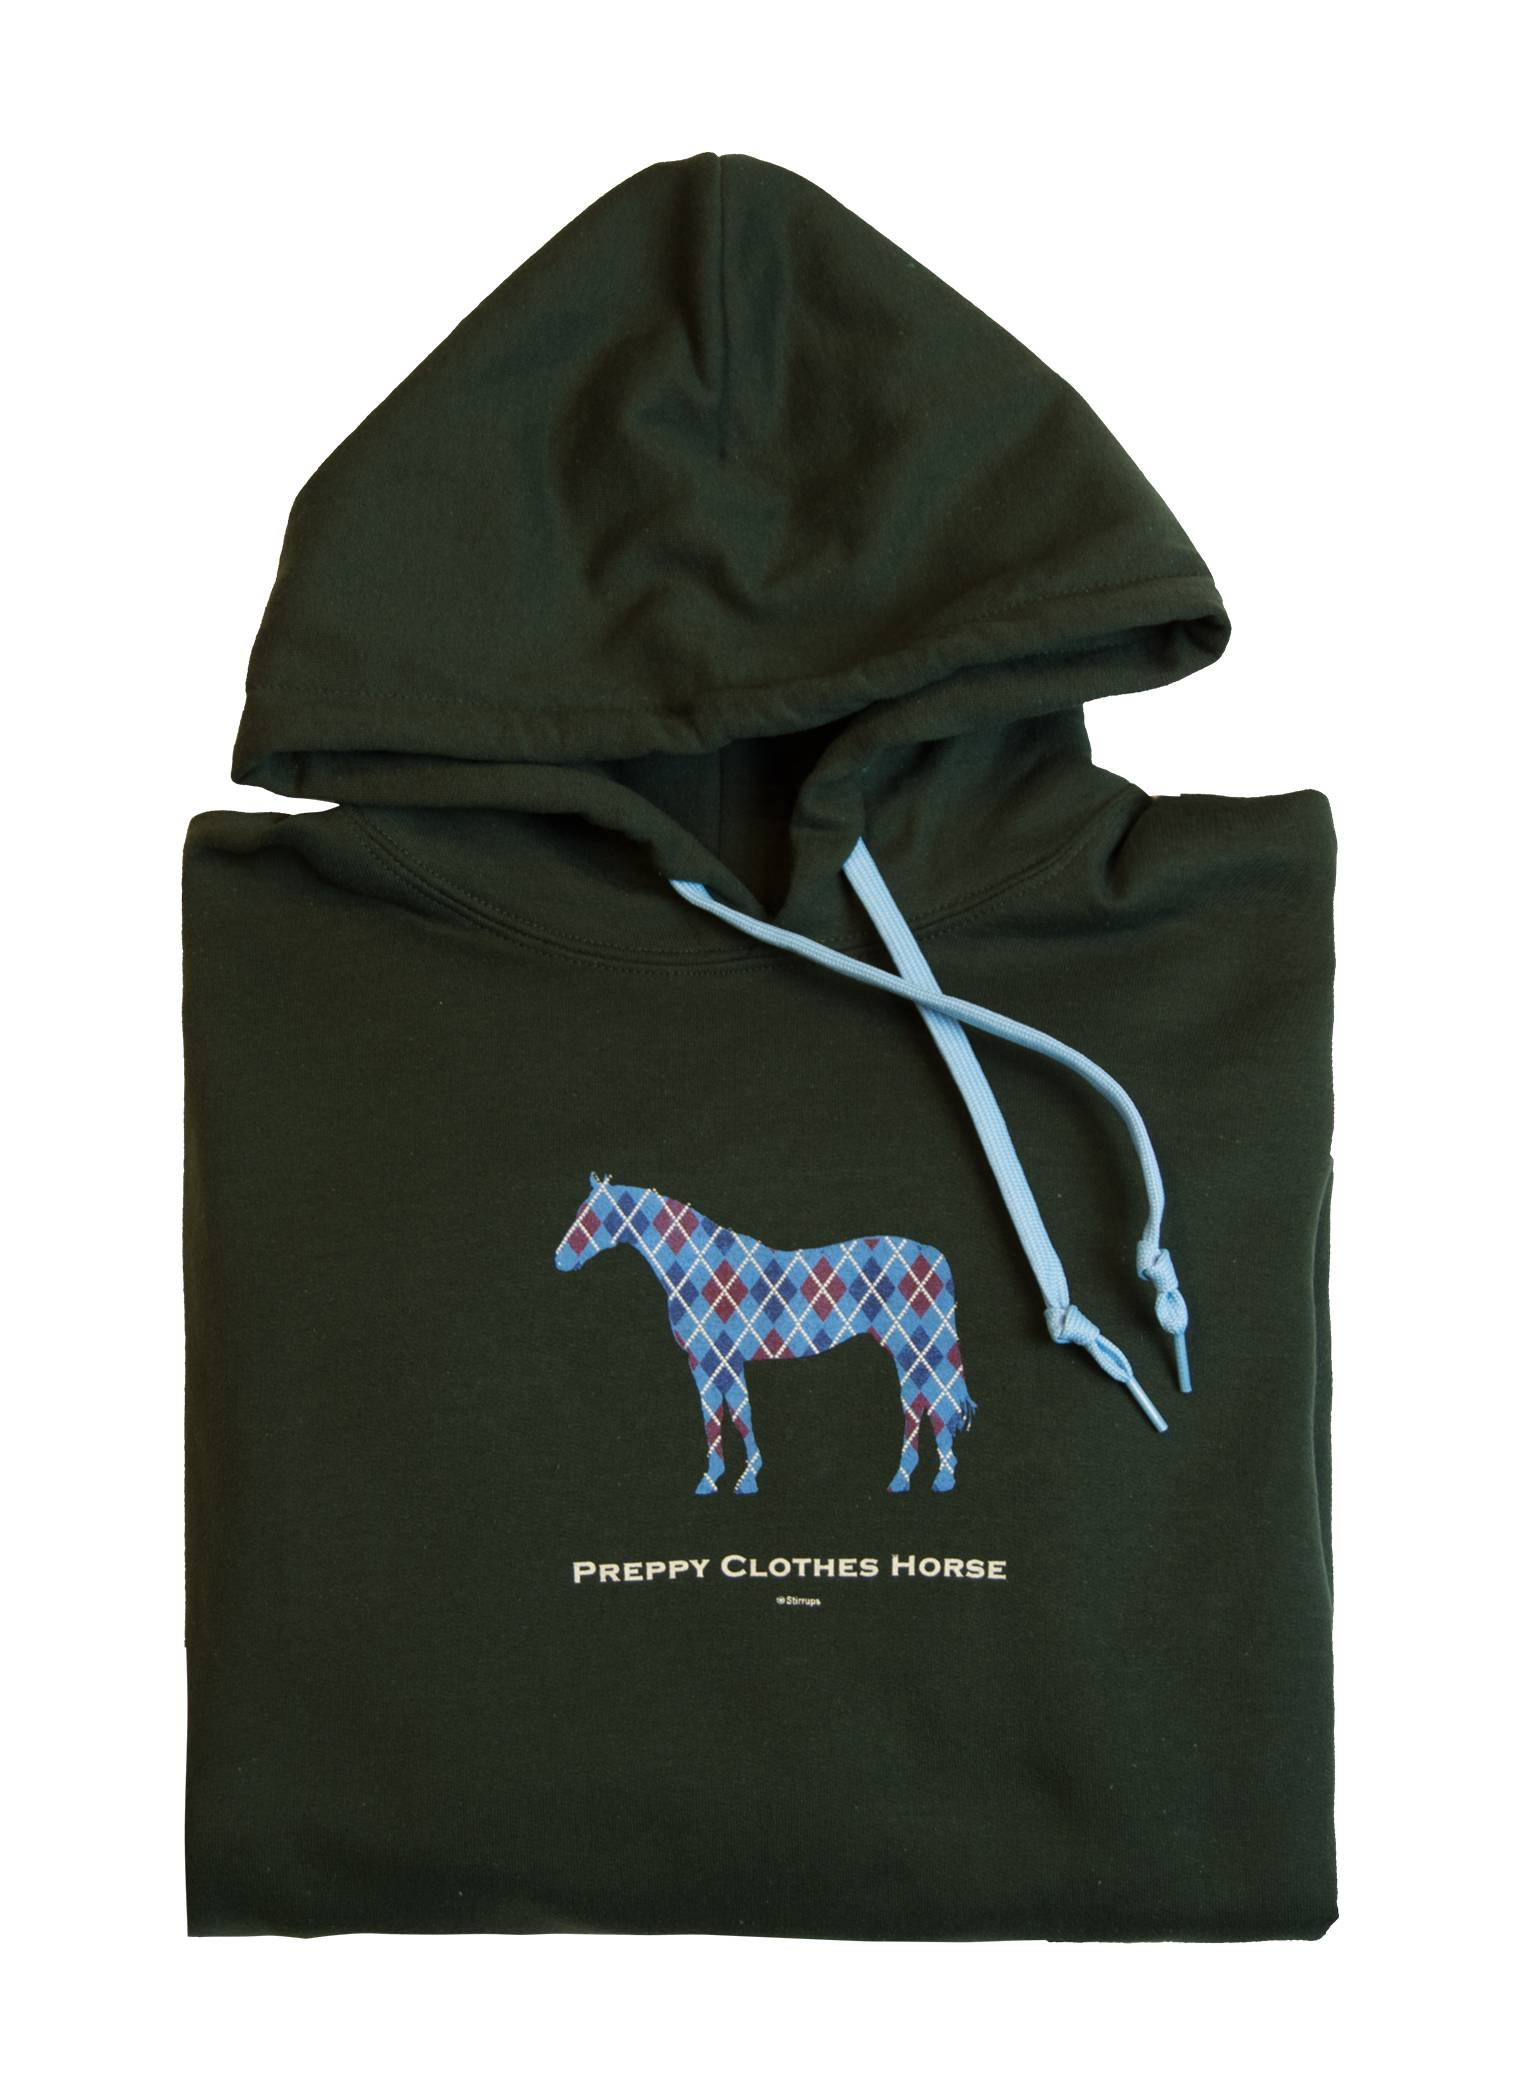 Stirrups Argyle Horse Hooded Sweatshirt - Ladies